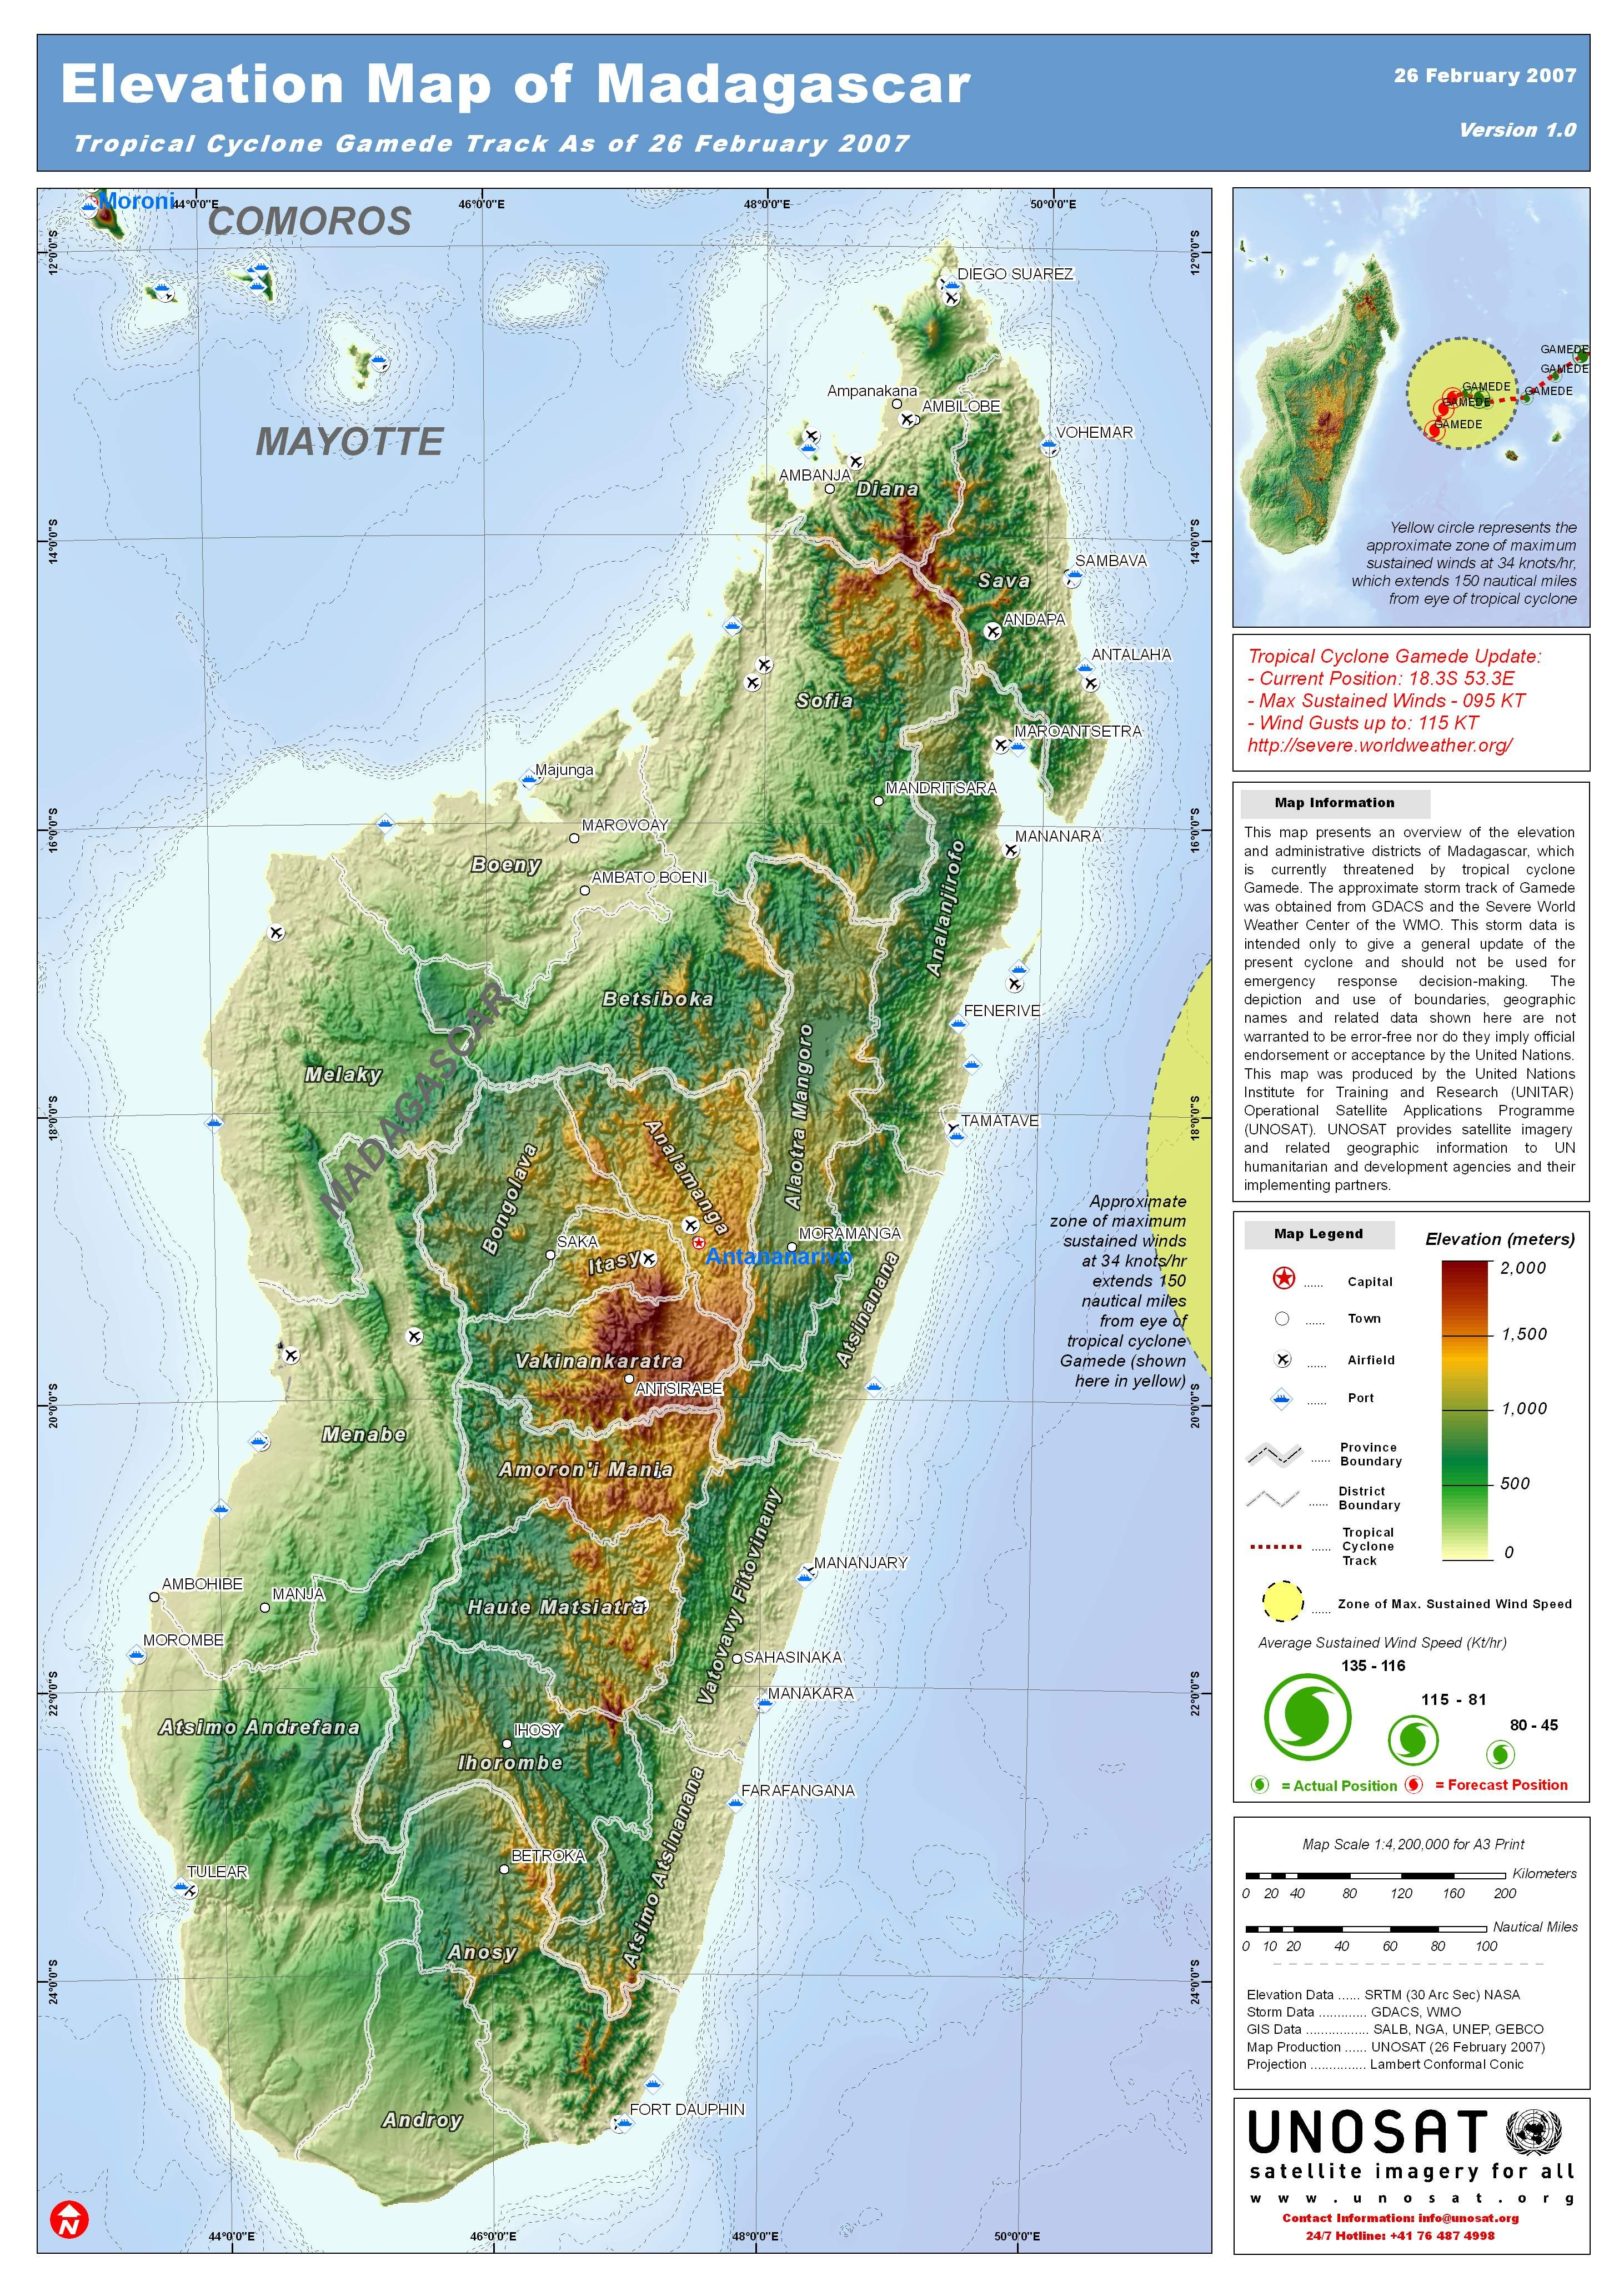 Madagascar topography by UNOSAT #map #madagascar #topography ...